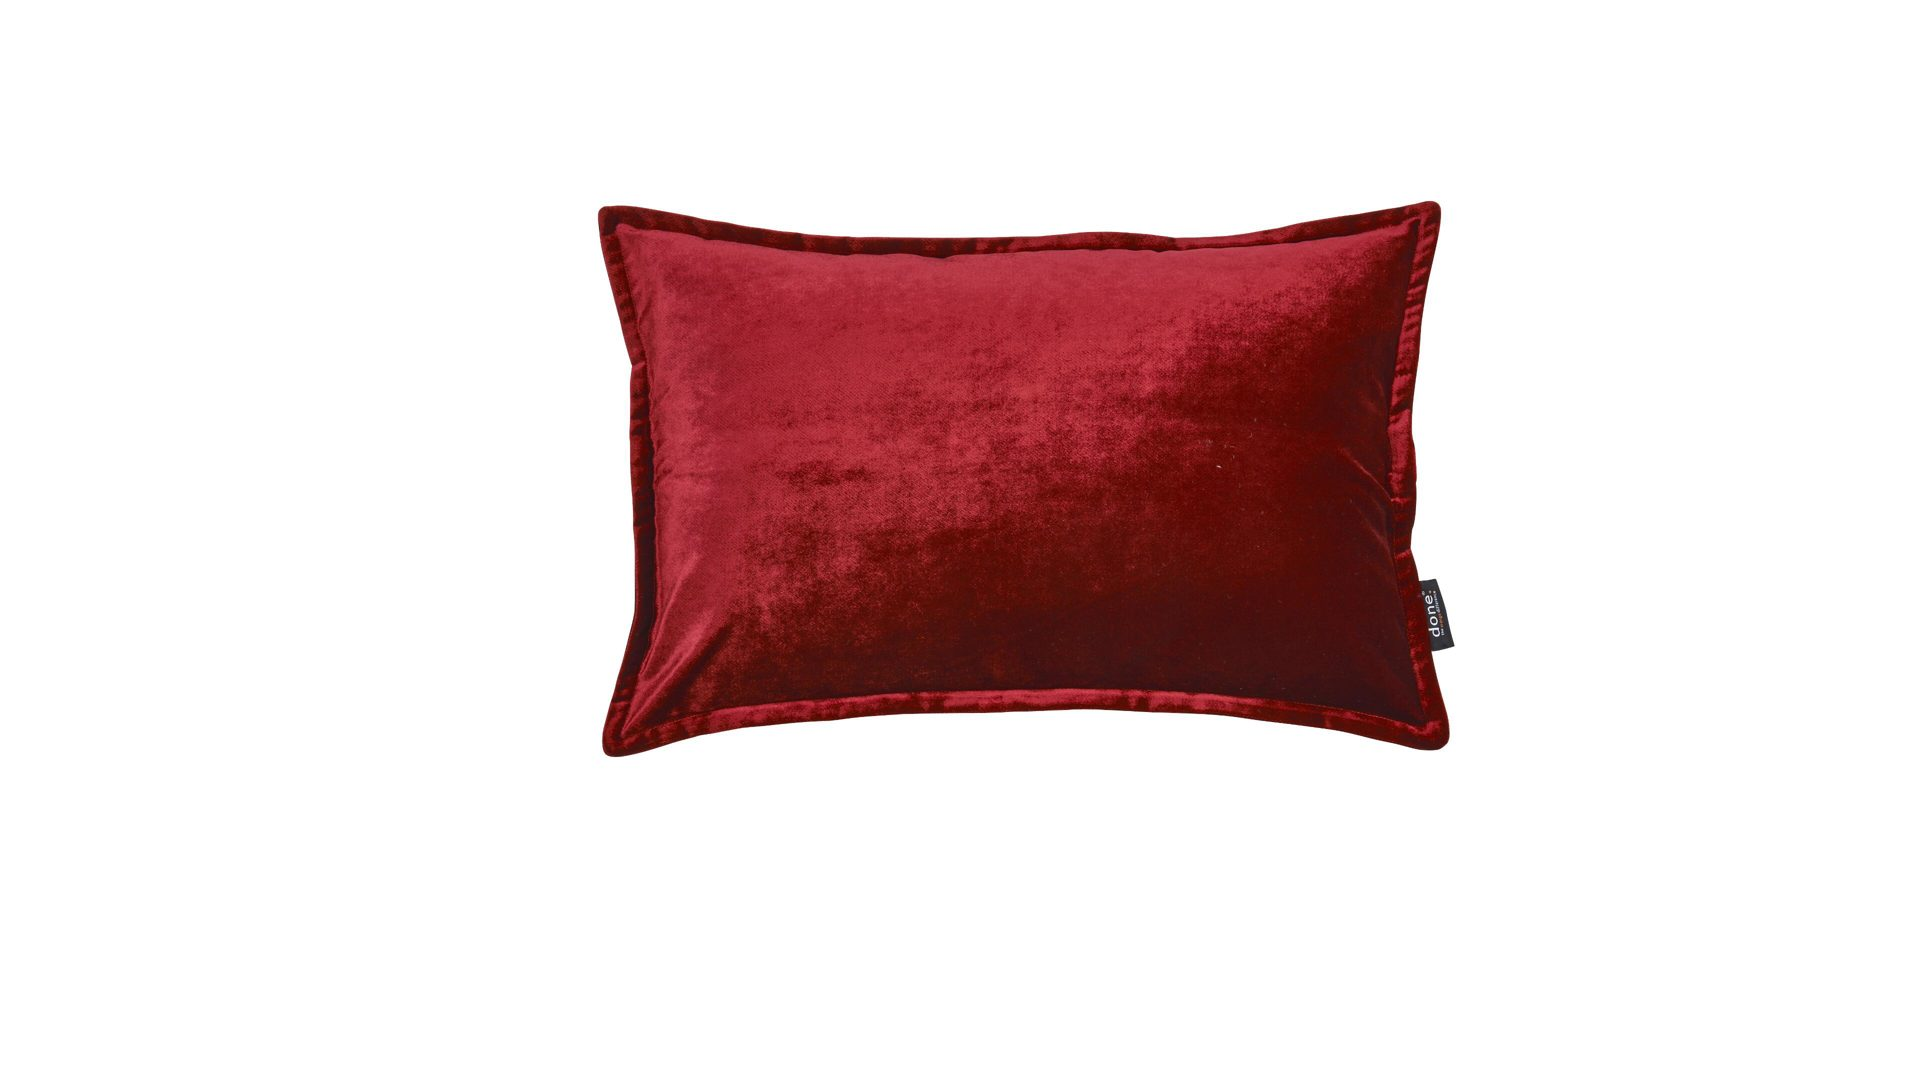 Kissenbezug Done by karabel home company aus Stoff in Rot Done Kissenhülle Cushion Glam roter Samt – ca. 40 x 60 cm